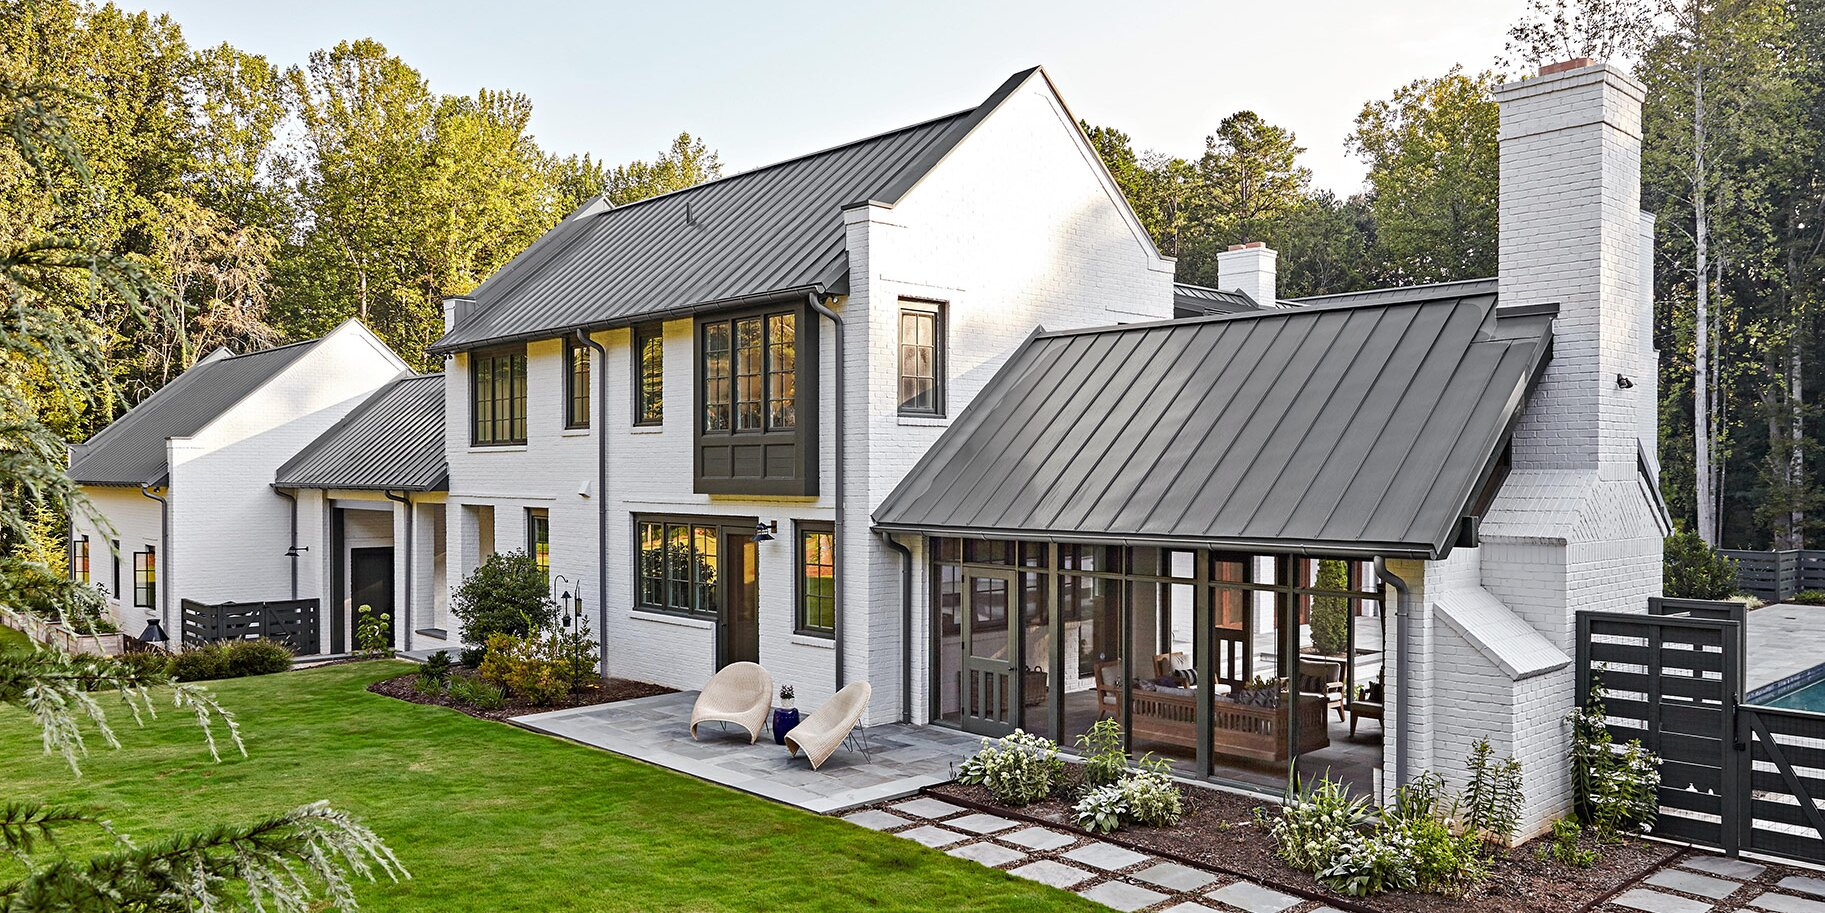 Building a Home? Here Are 7 Major Industry Changes You Should Know for 2021